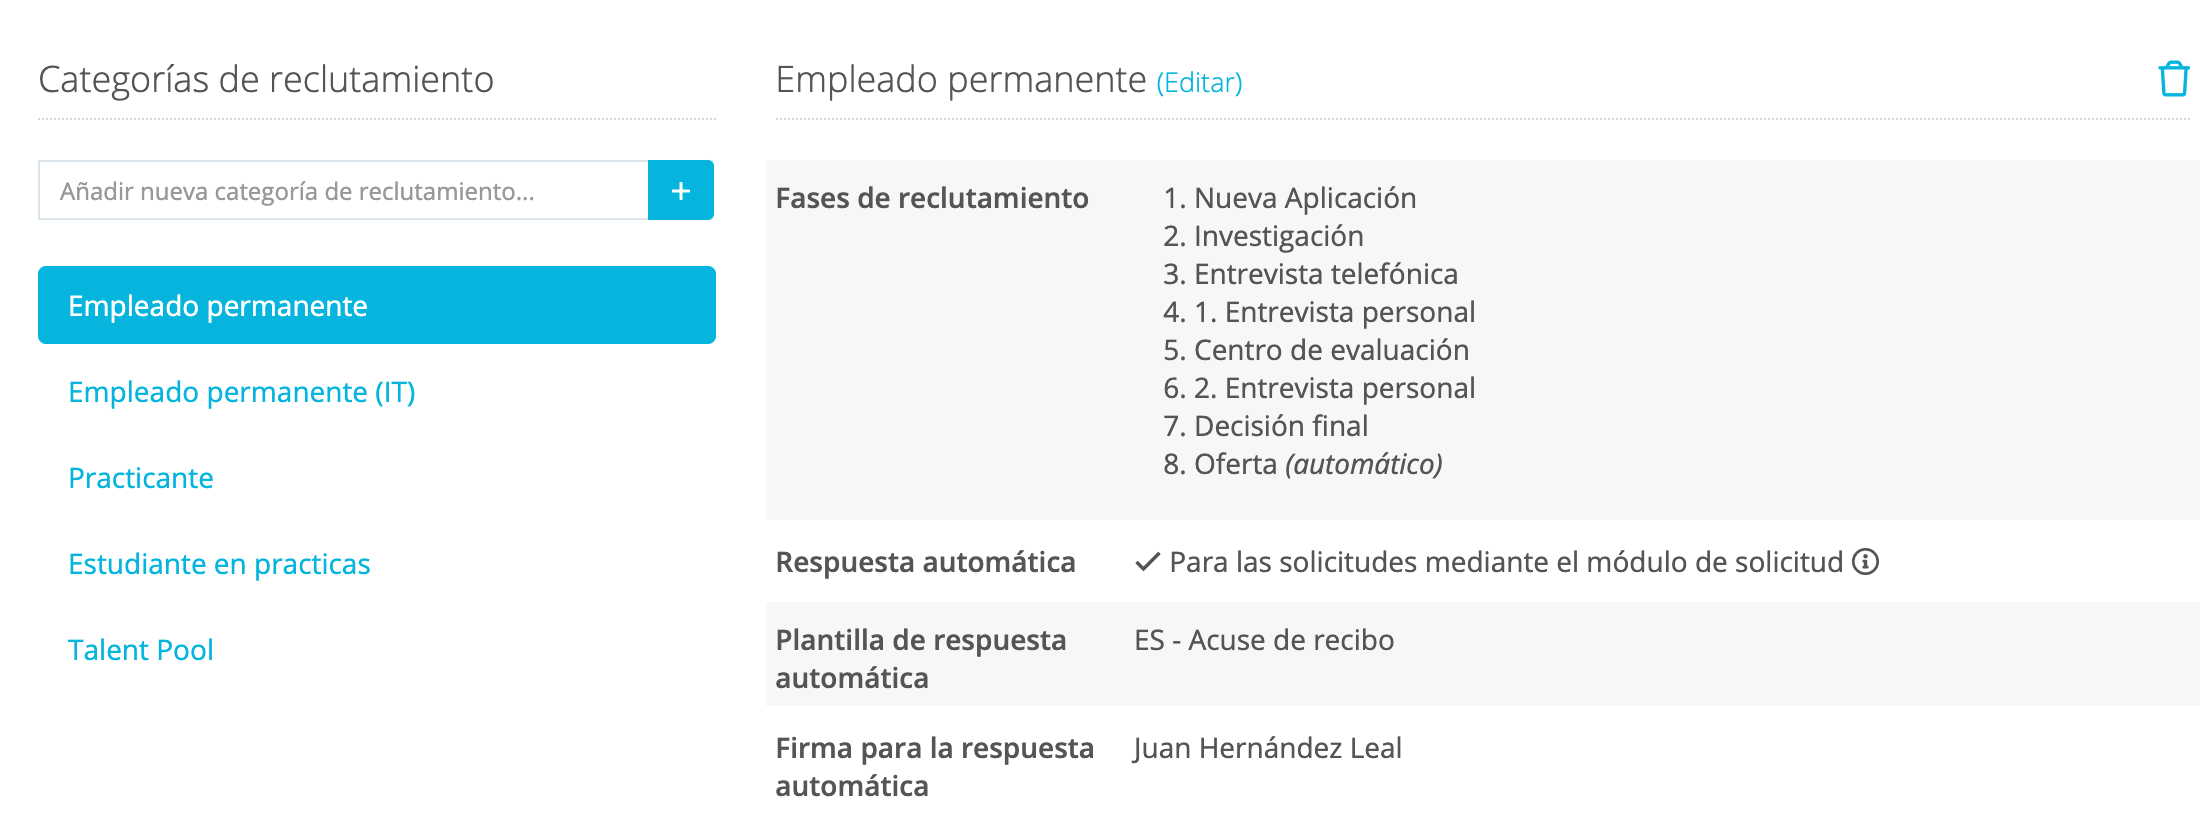 settings-recruiting-categories_es.png